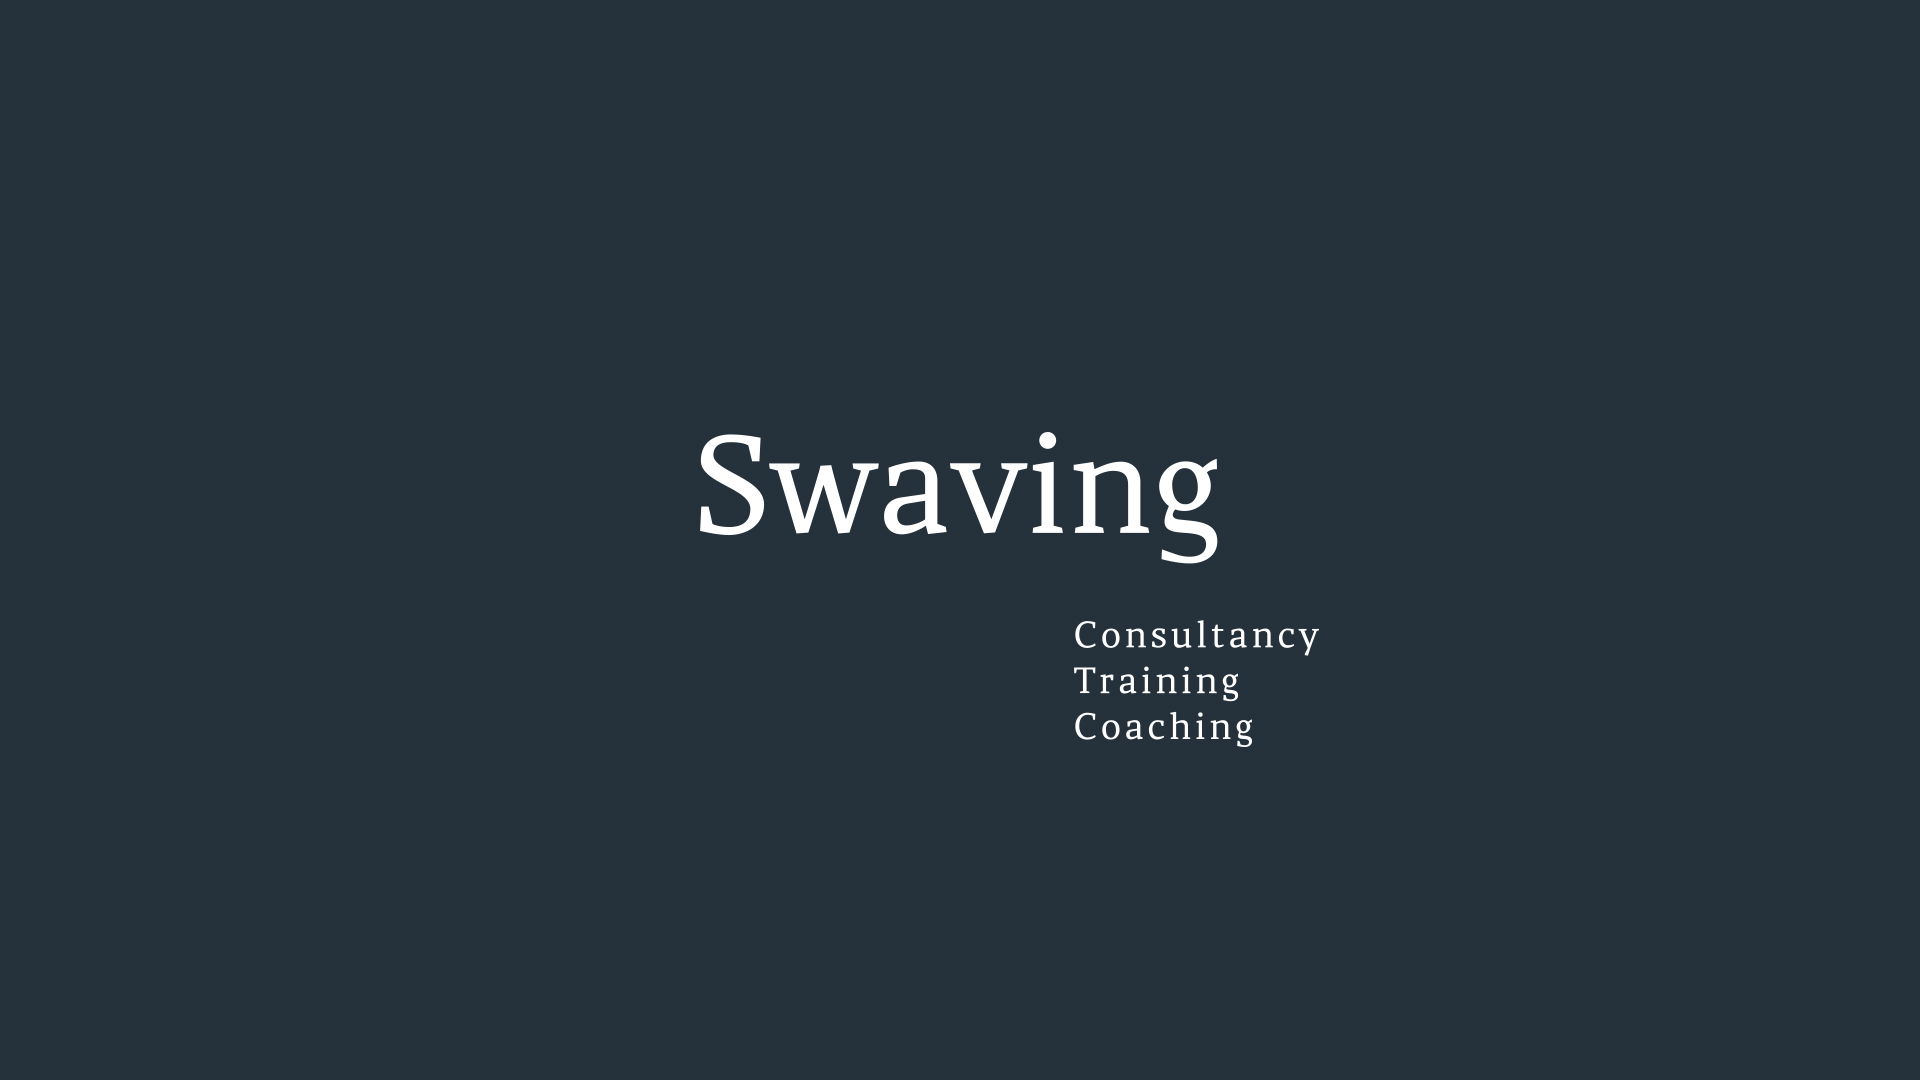 Swaving_logo2_1920x1080